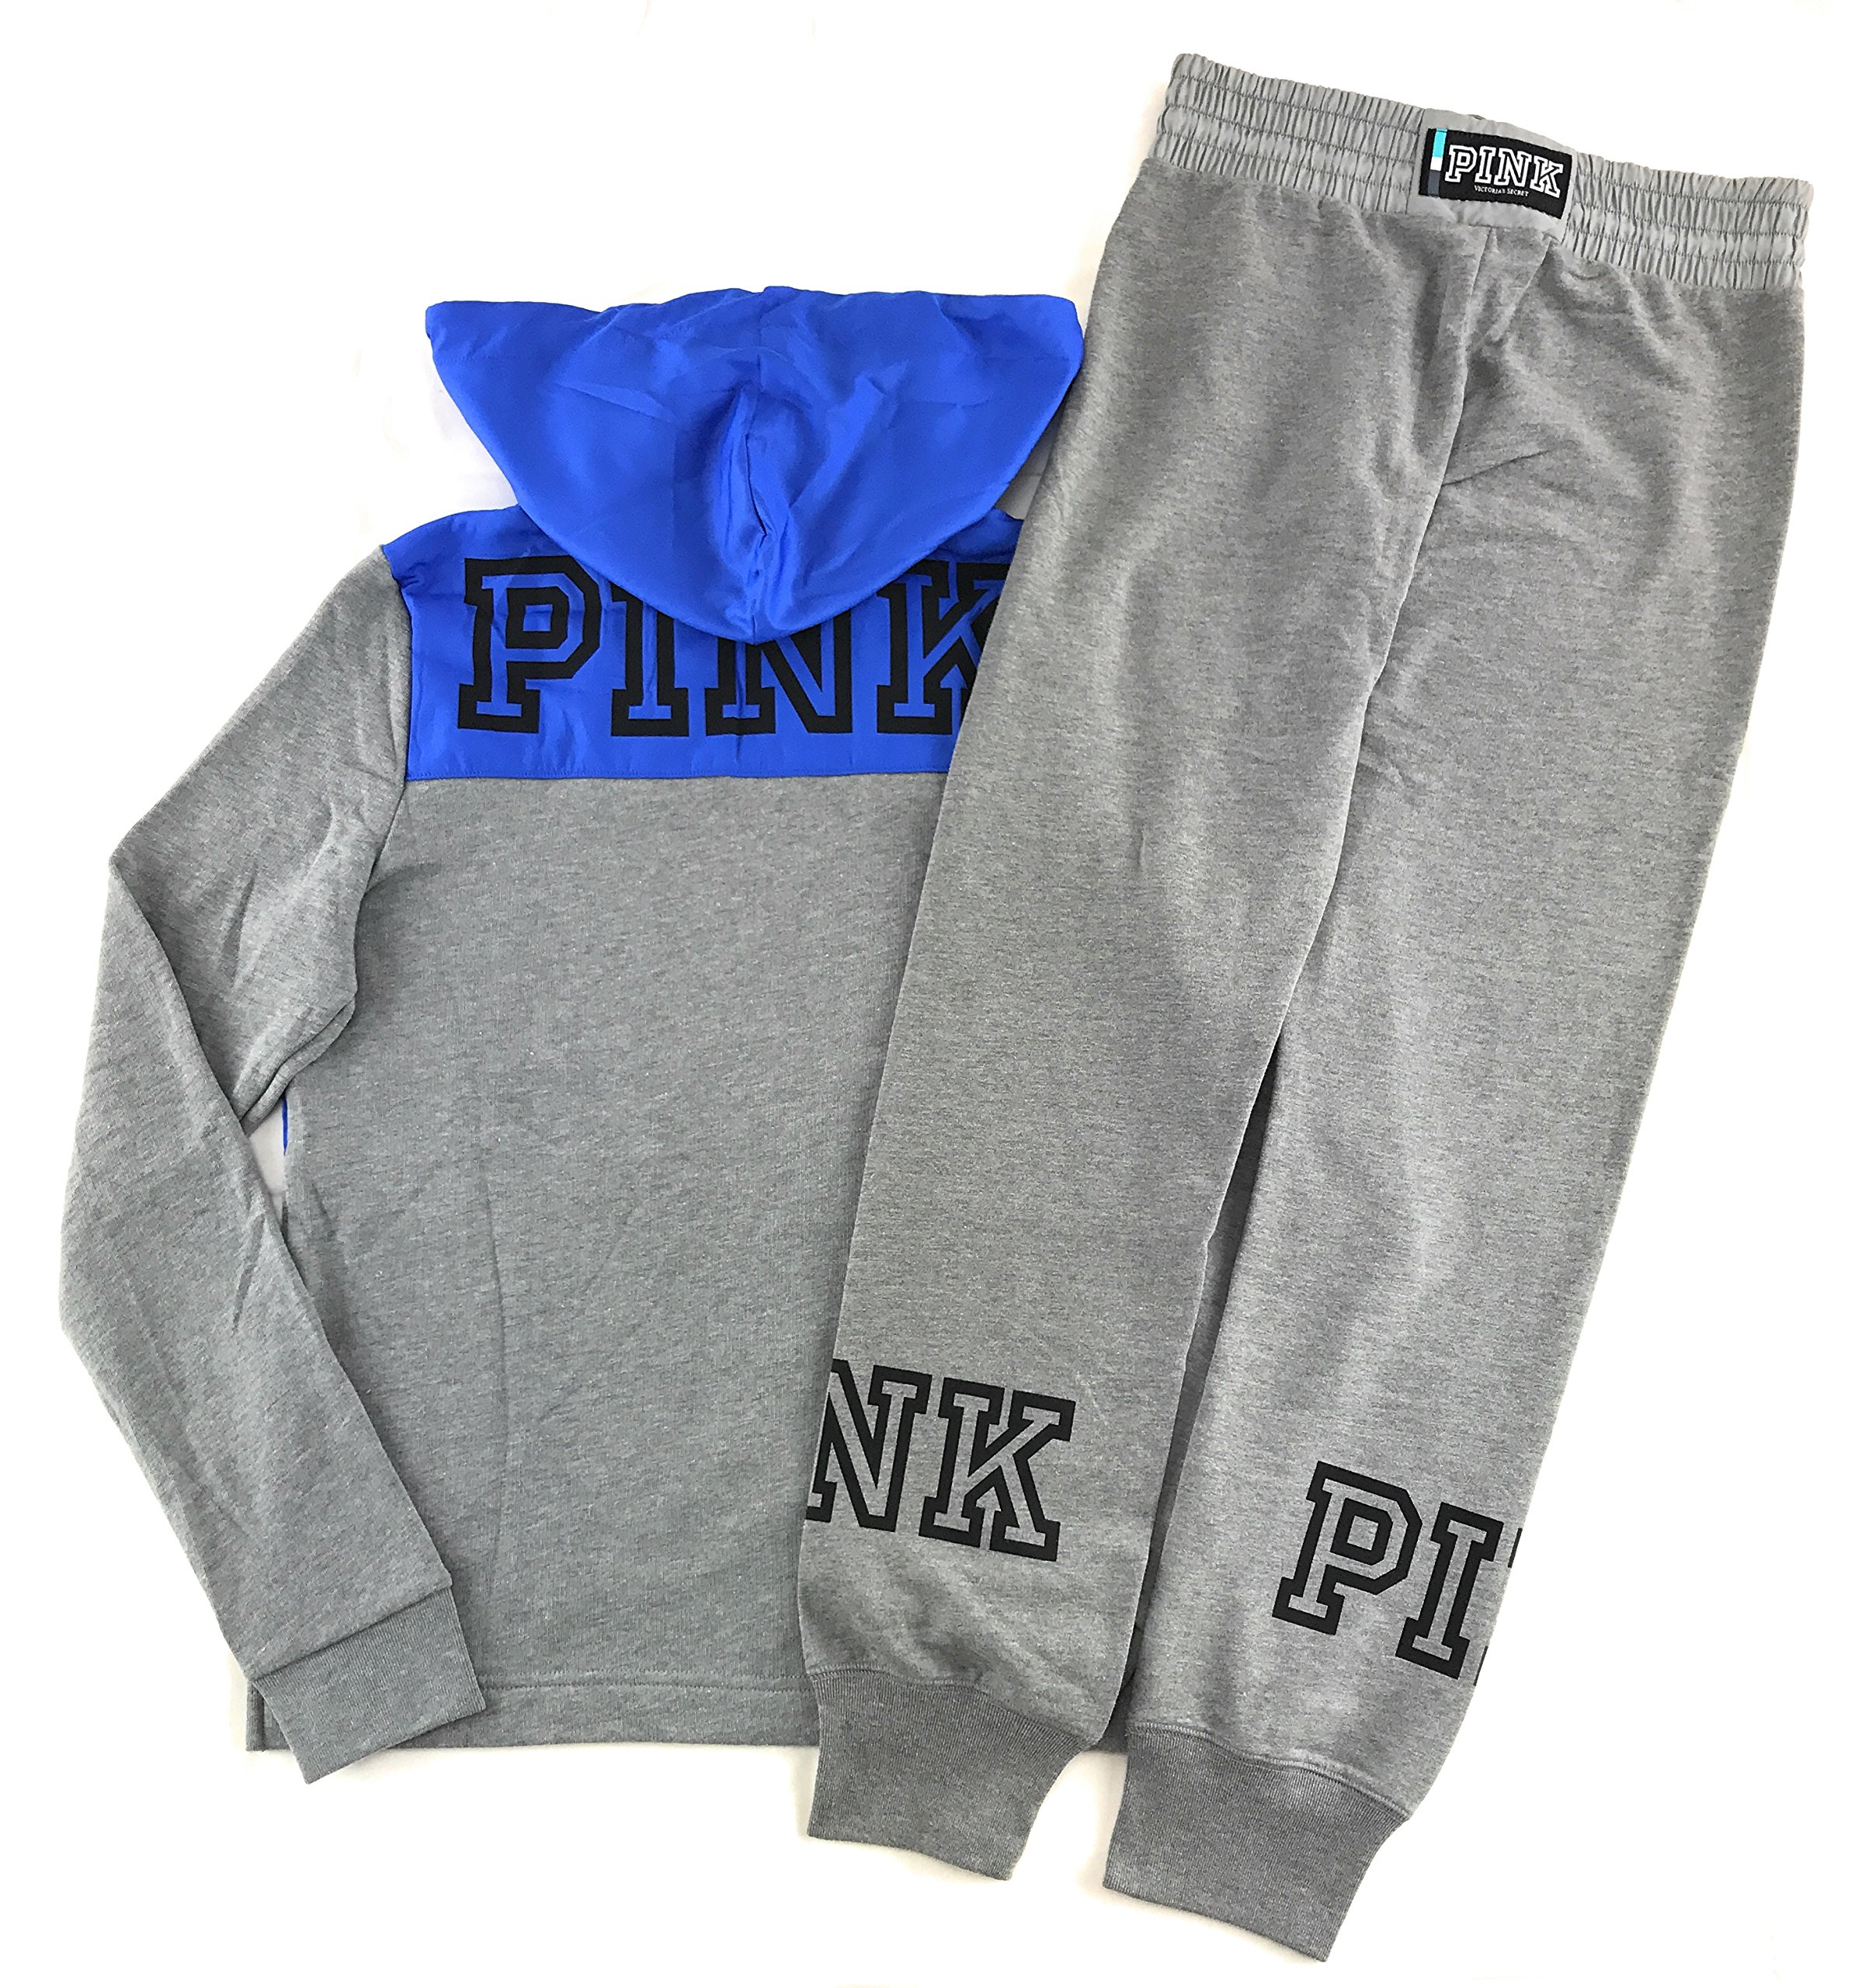 Victoria's Secret Pink Hoodie and Sweat Pants Set Clay Grey/Vivid Blue Medium